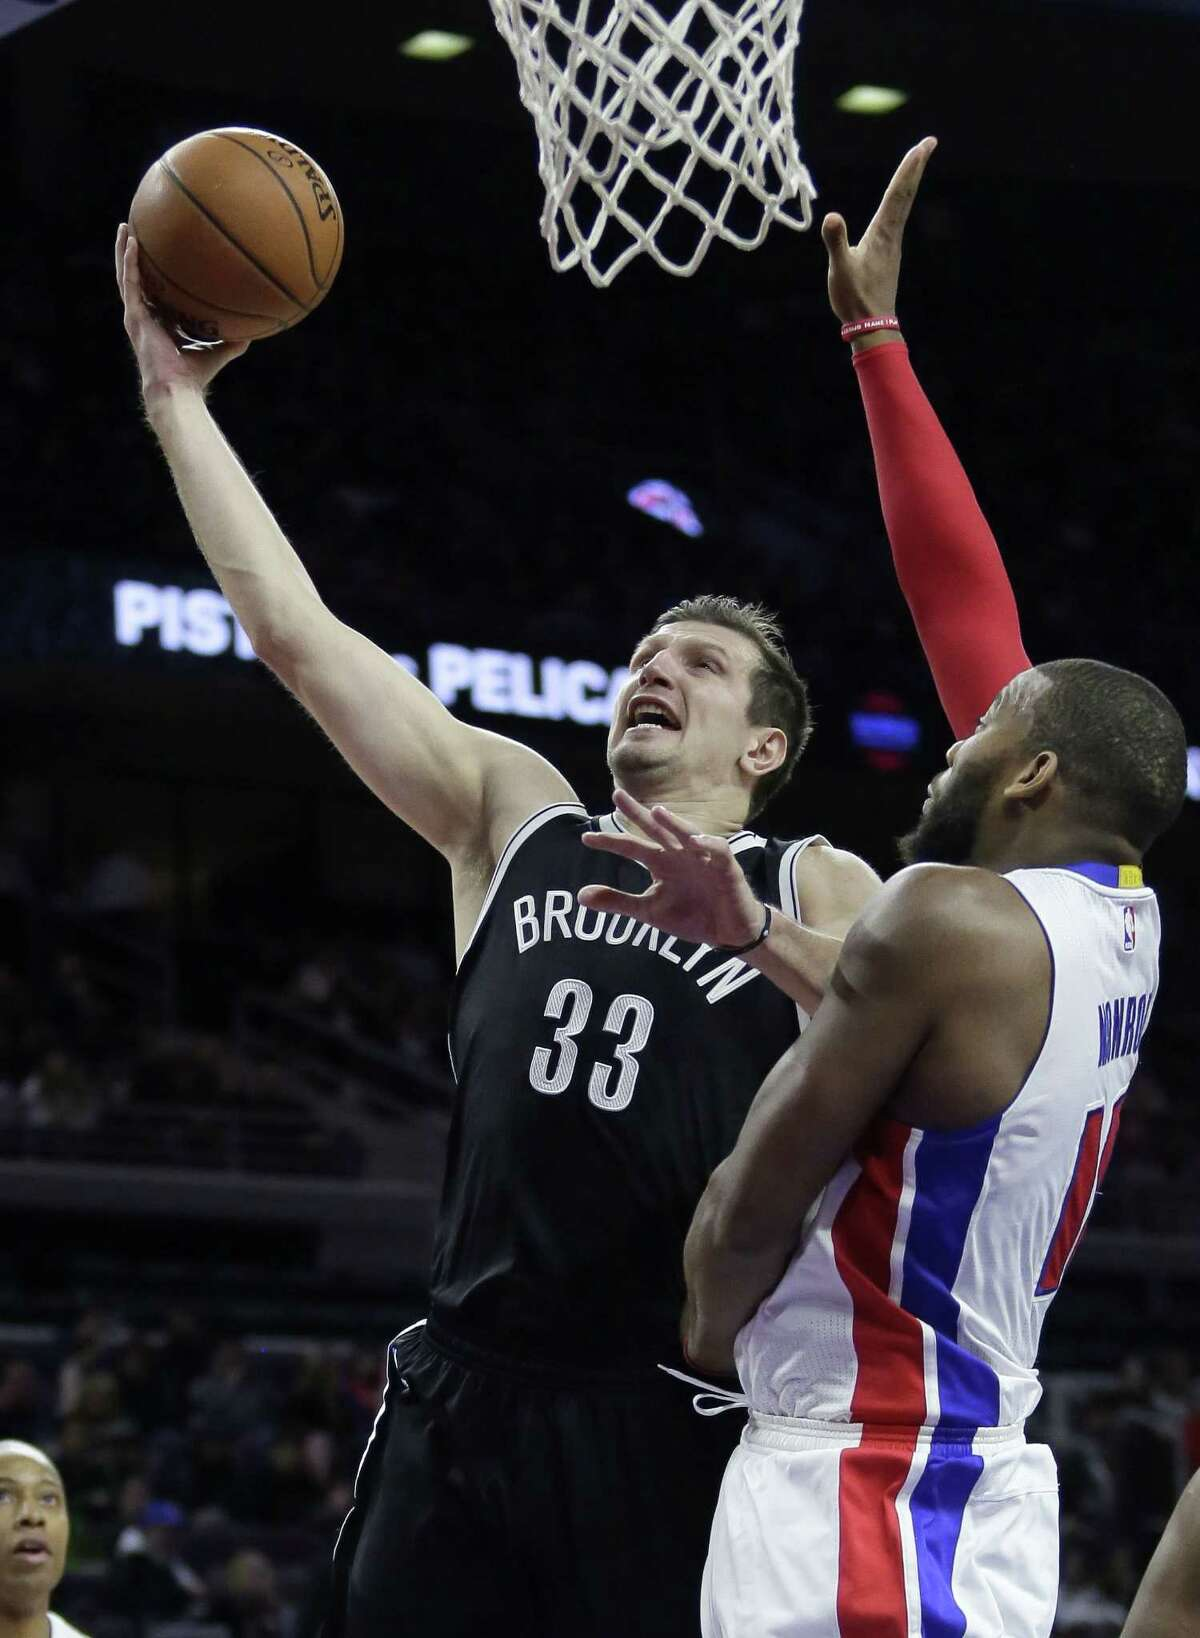 Brooklyn Nets forward Mirza Teletovic (33) goes to the basket against the Detroit Pistons' Greg Monroe during a Jan. 10 game in Auburn Hills, Mich.